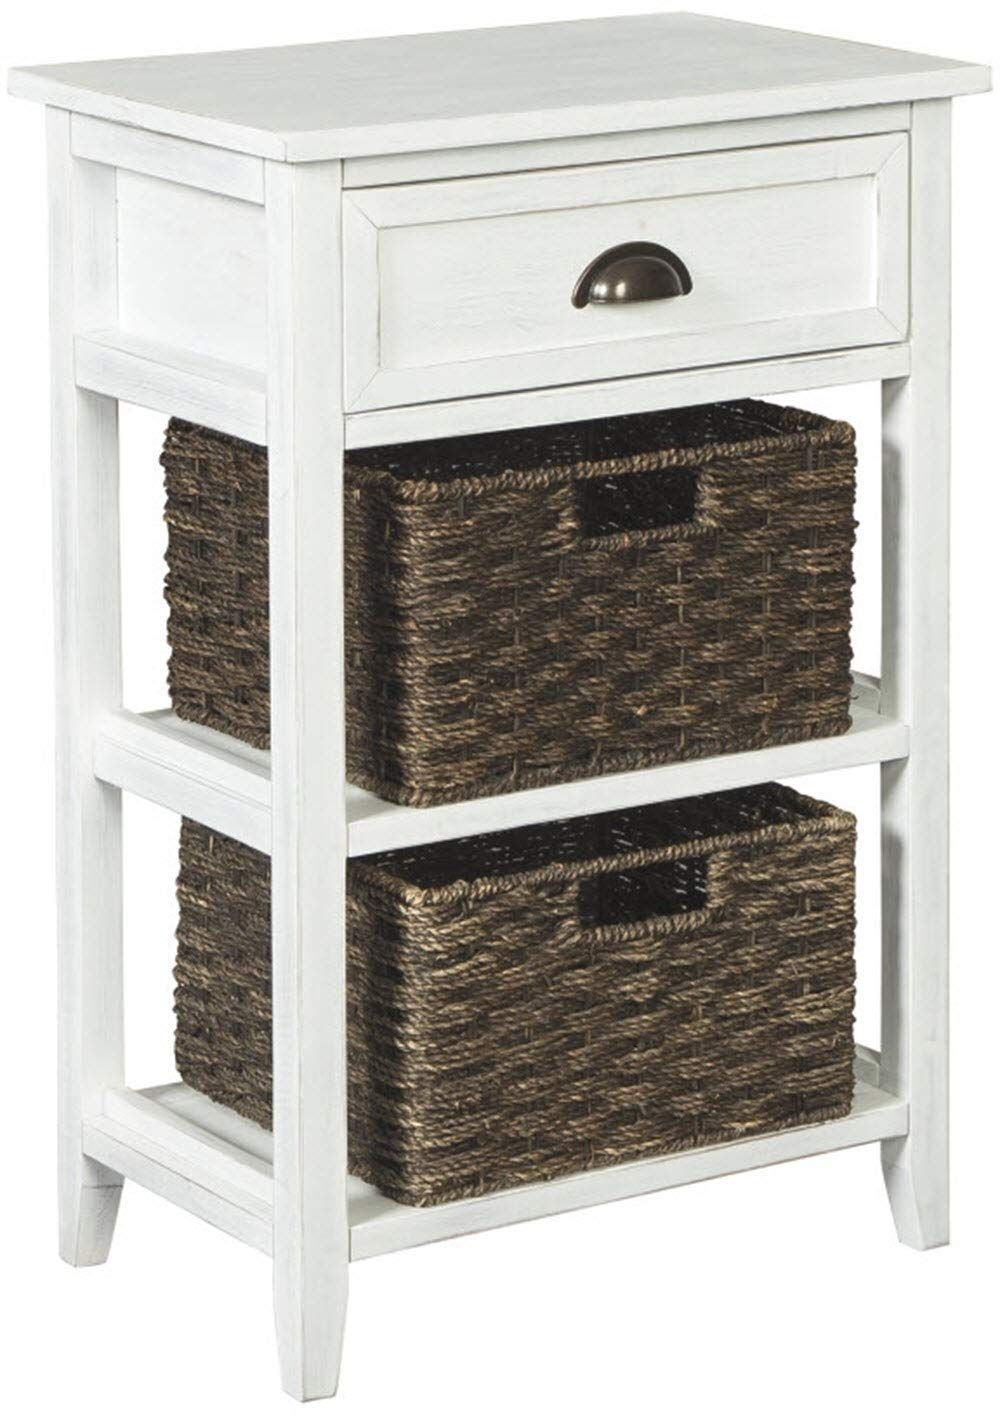 ashley furniture signature design oslember storage accent table white with includes brown removable baskets antique finish hope you actually like our world market side grey and